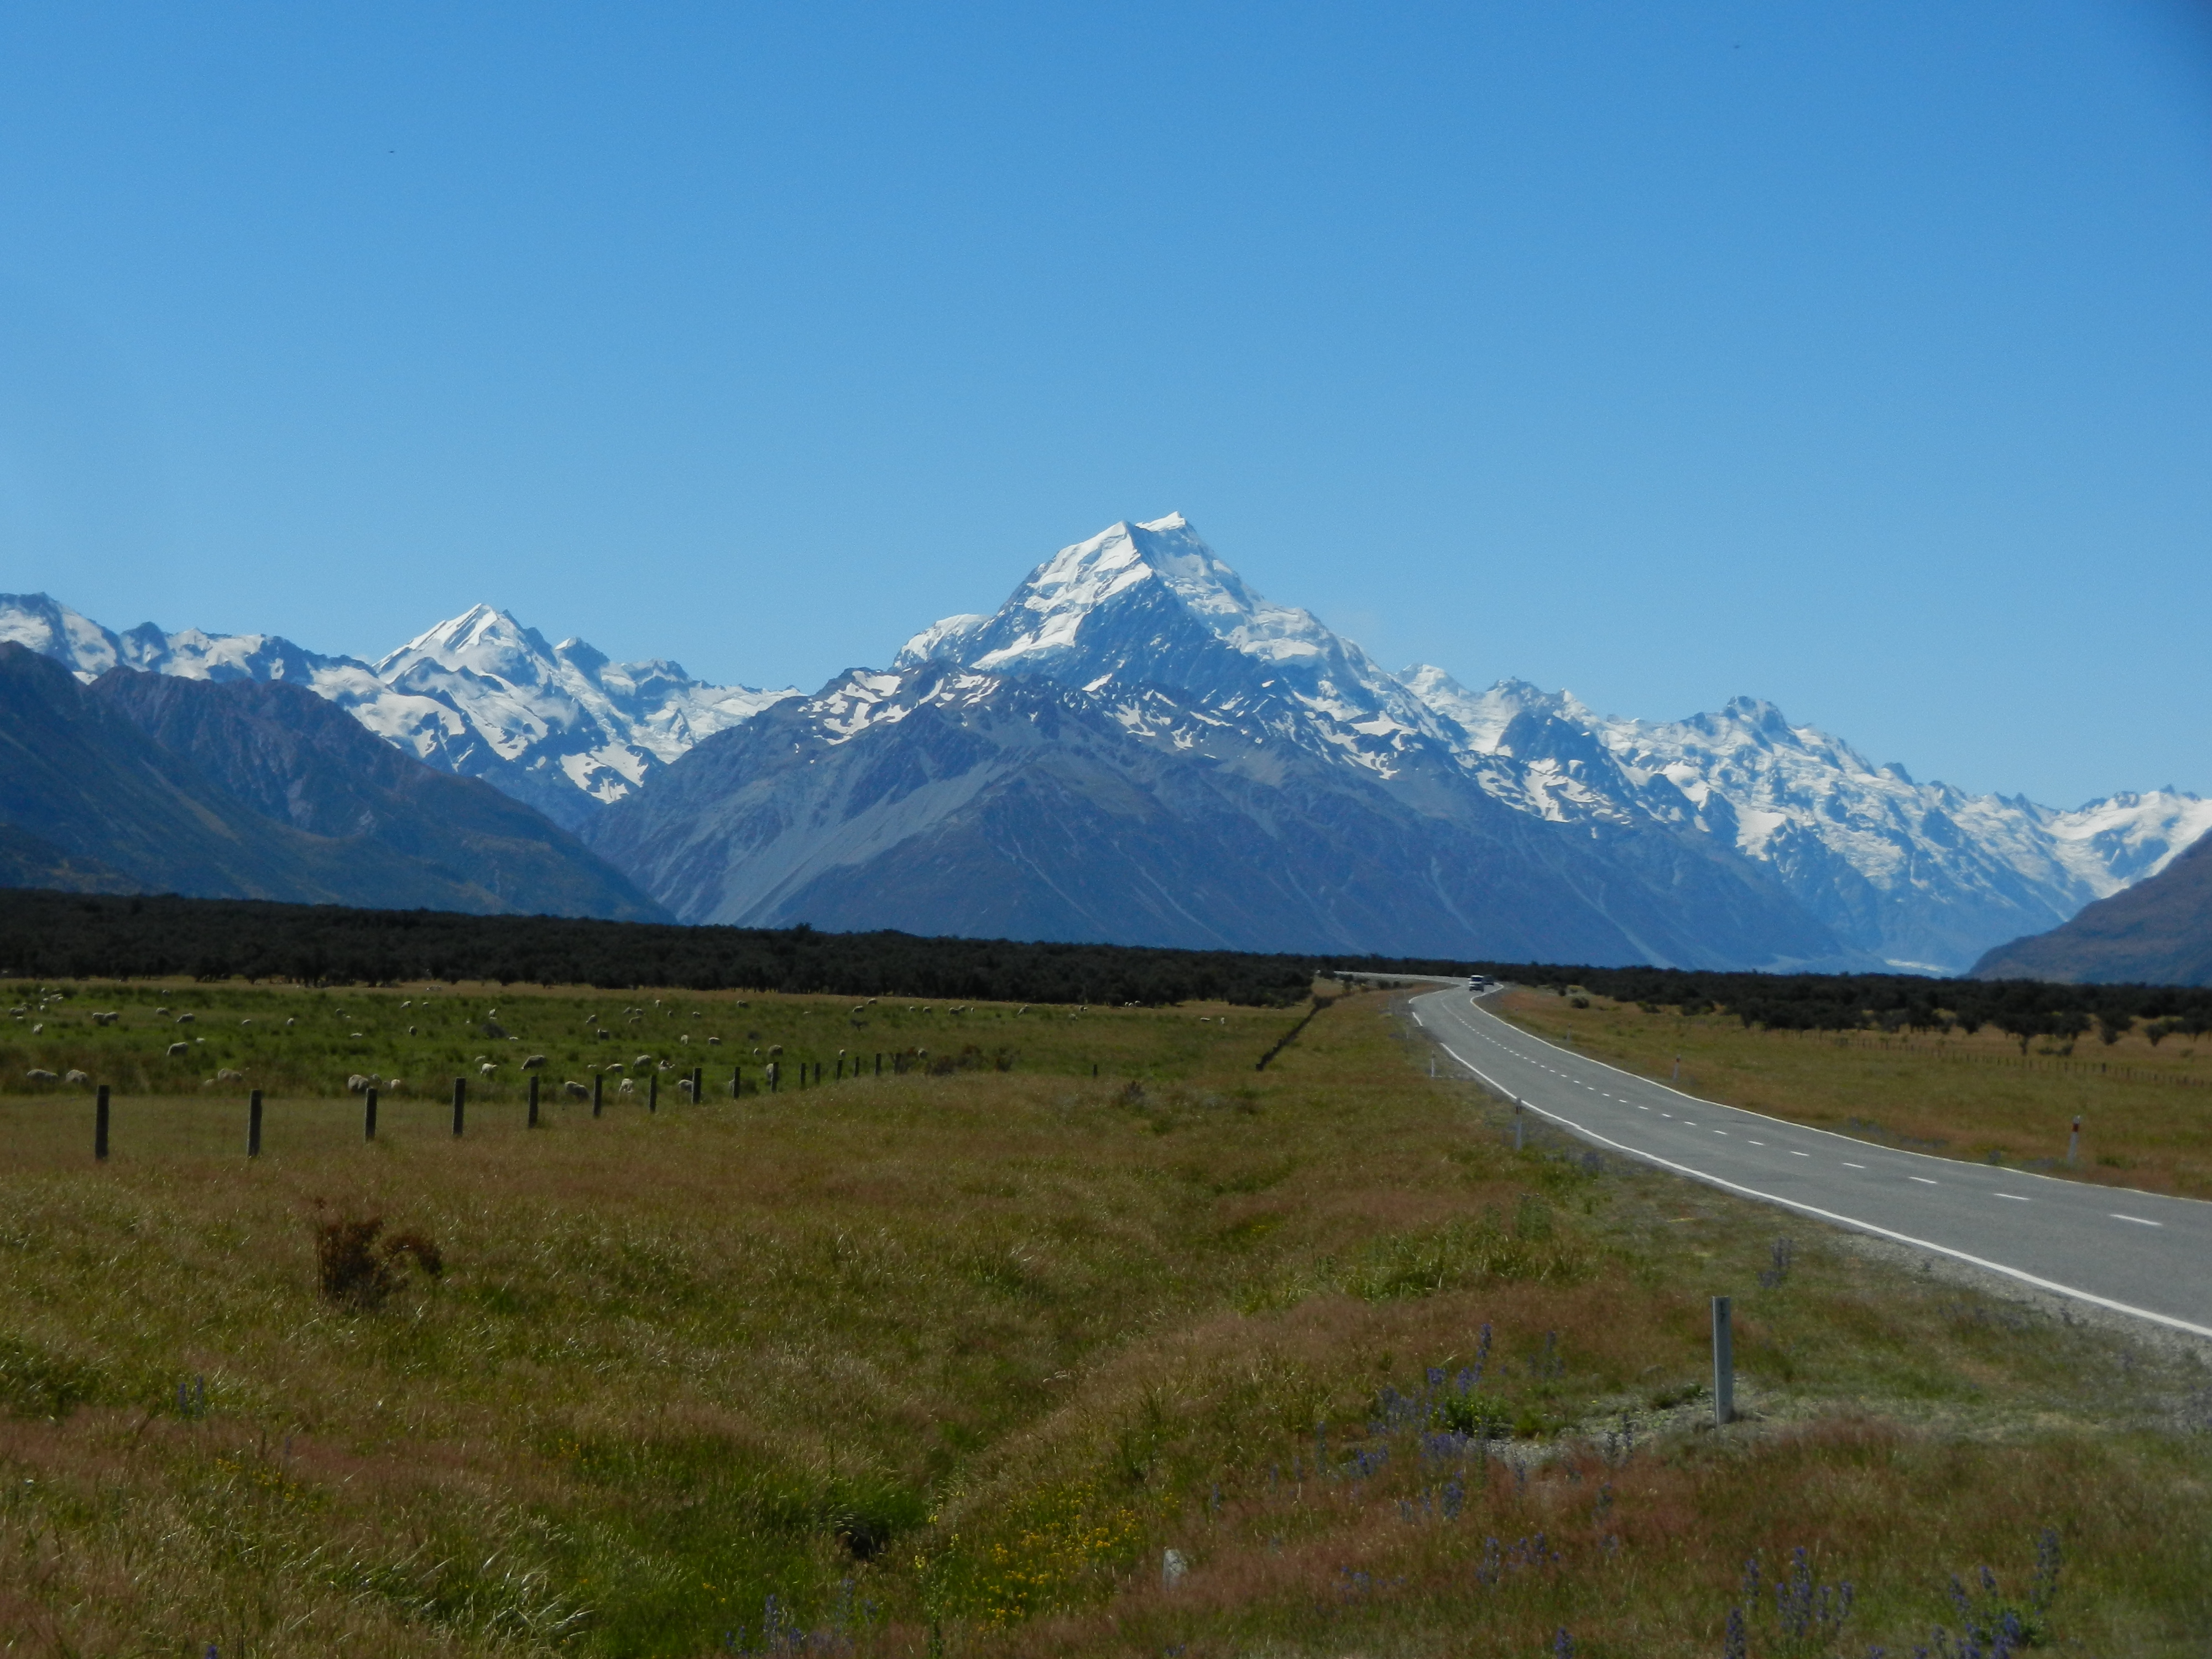 Mountain range in the distance with a road and open fields leading to it.